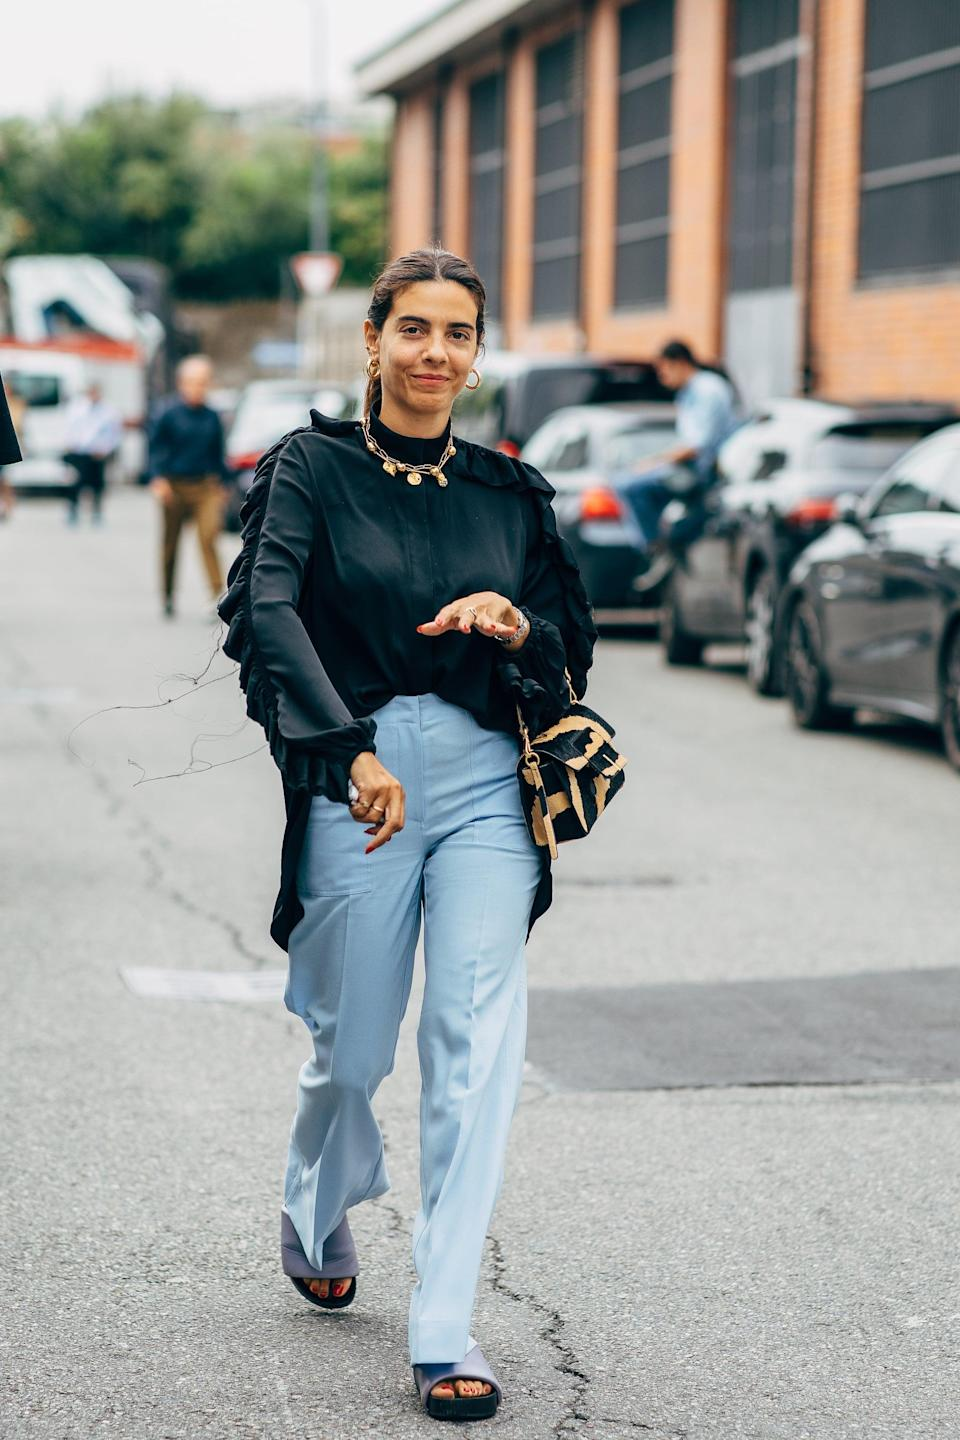 <p>Top your favorite jeans with a statement top and necklace, but keep your footwear laidback. </p>